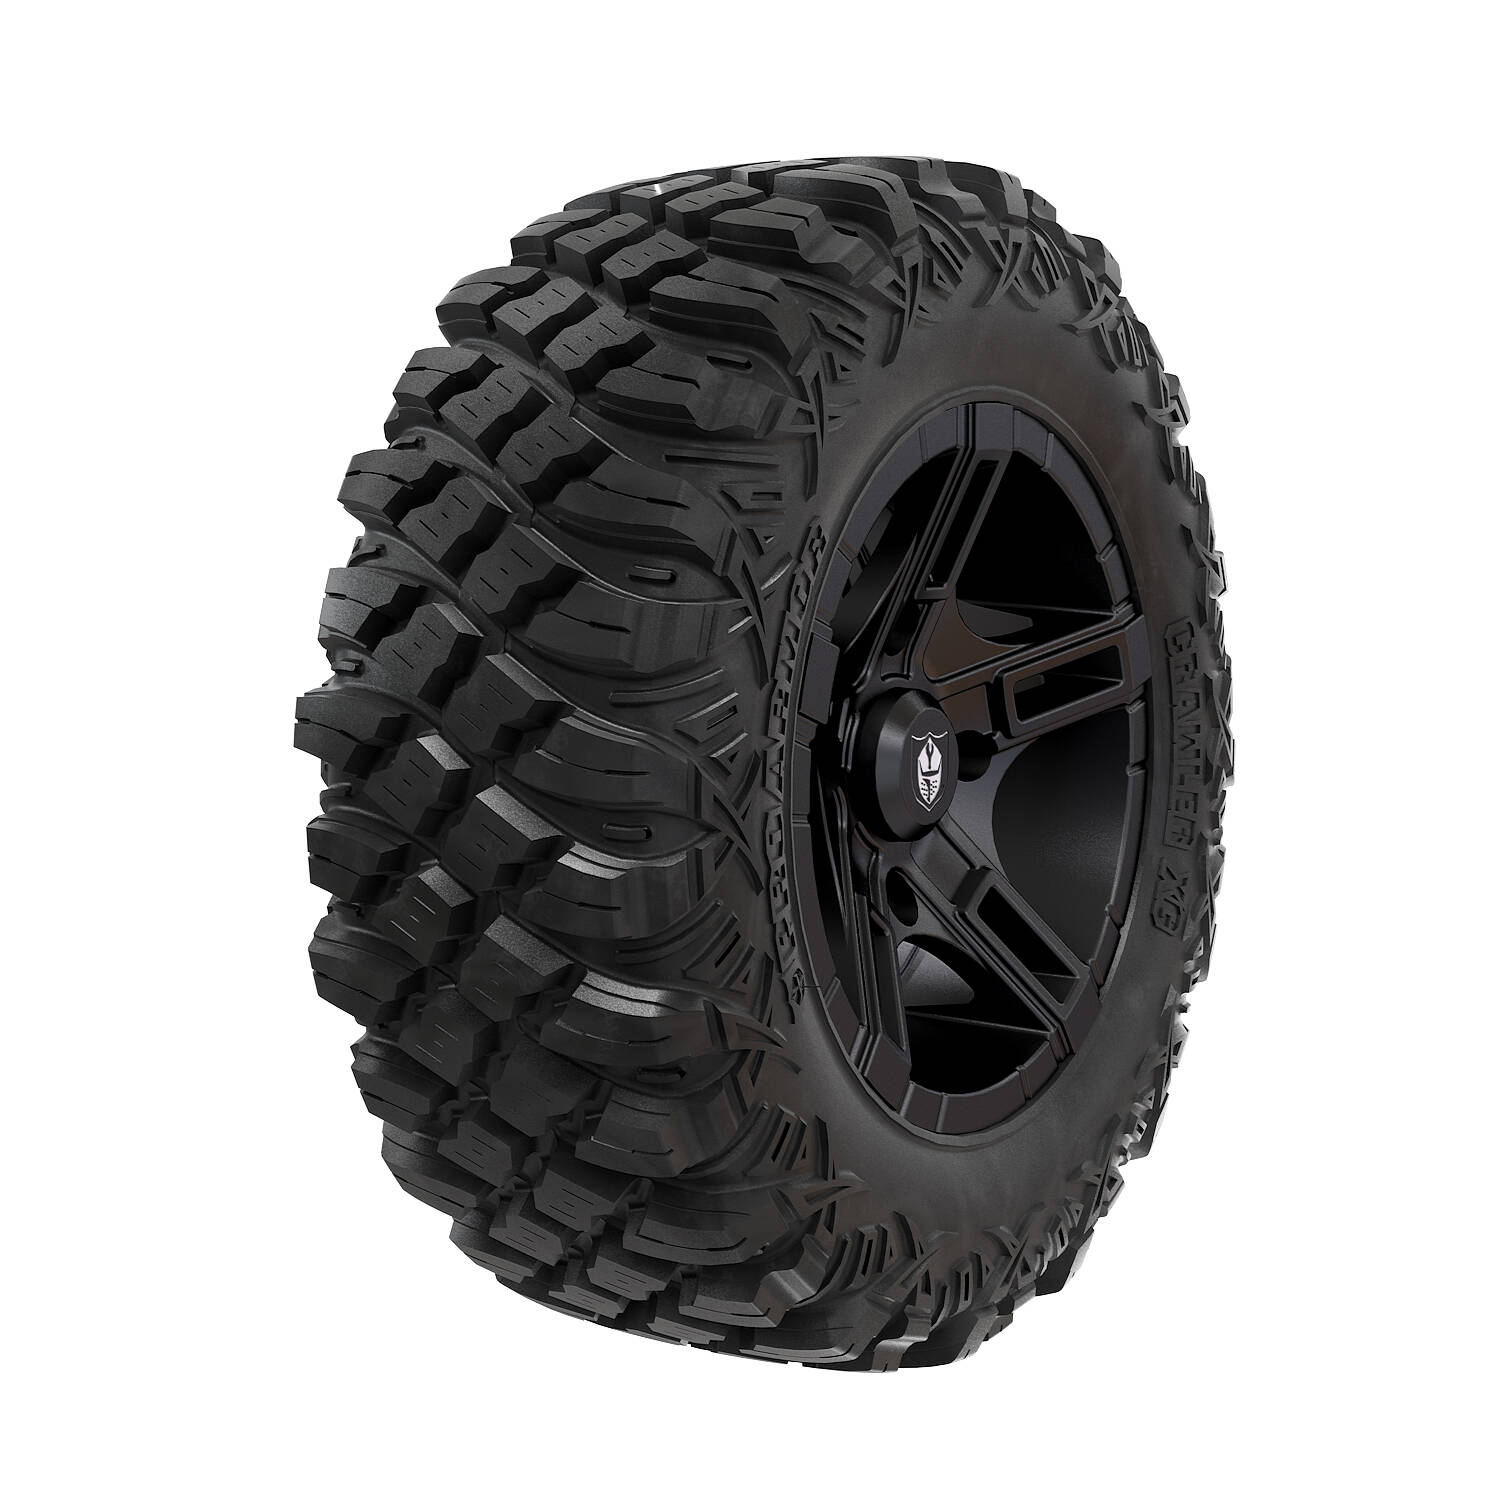 Pro Armor® Wheel & Tire Set: Flare - Matte Black & Crawler XG - 28""